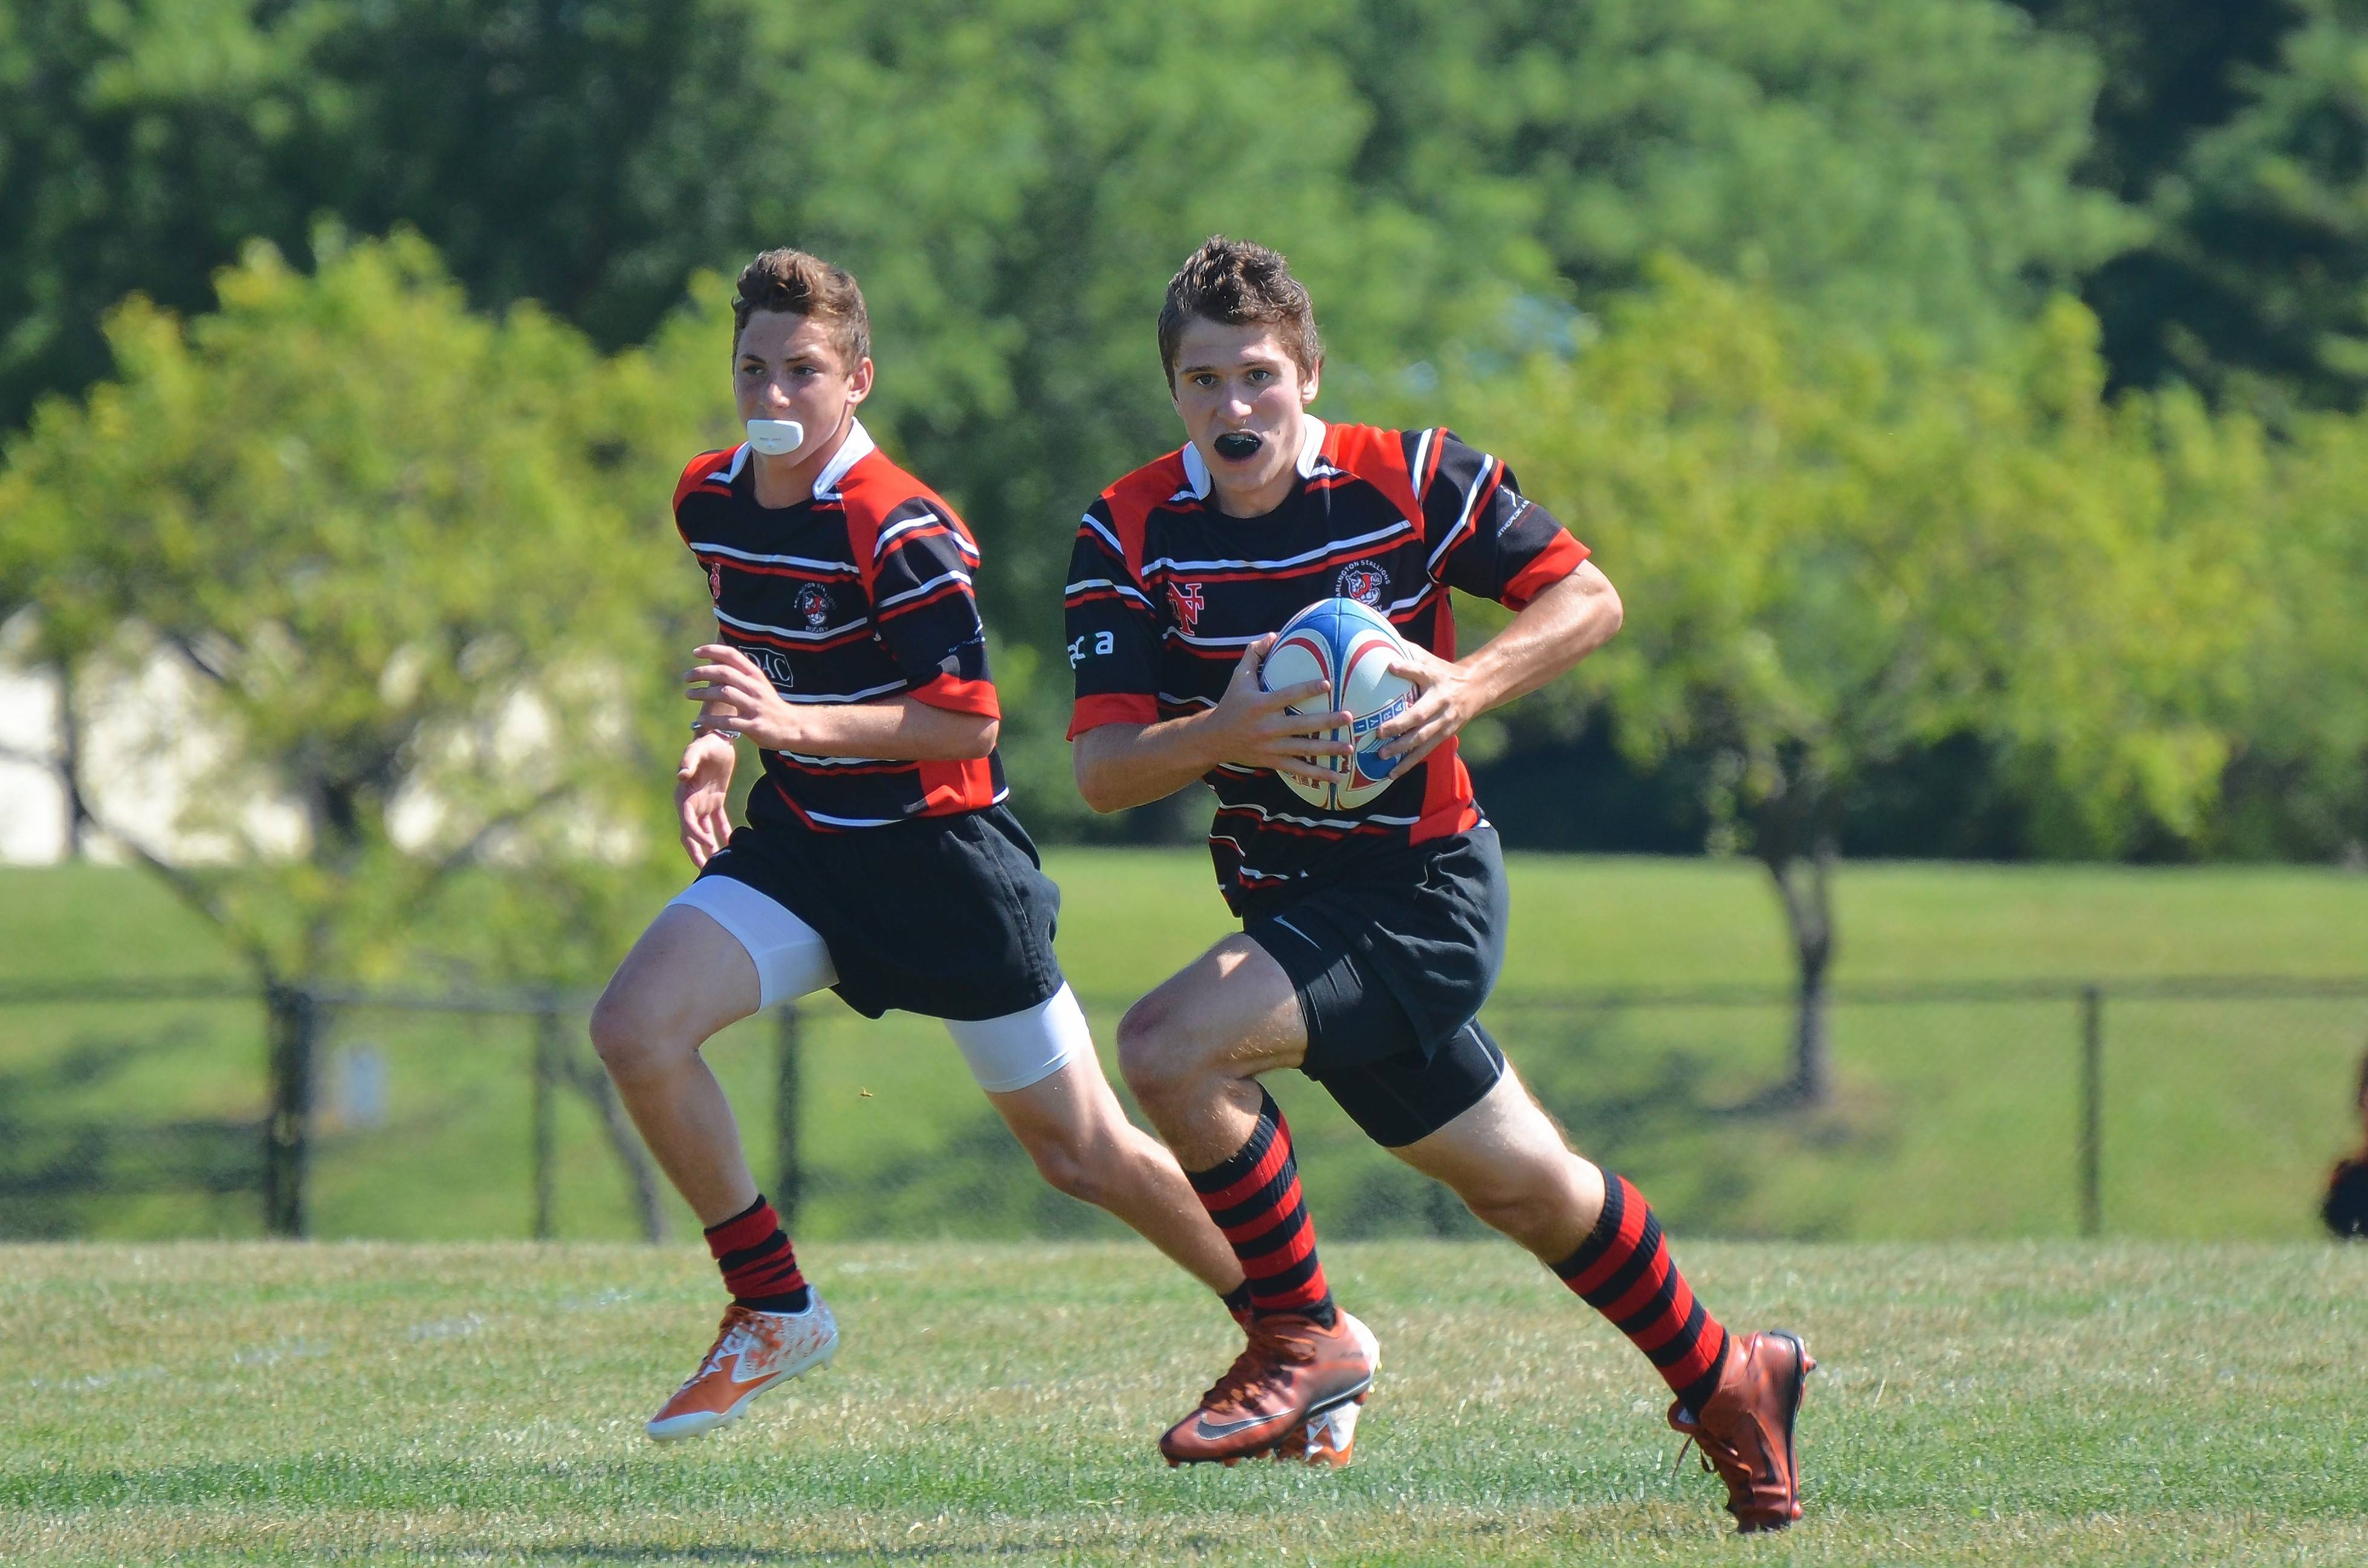 Rugby in suburbs grows as more kids play this high-intensity sport